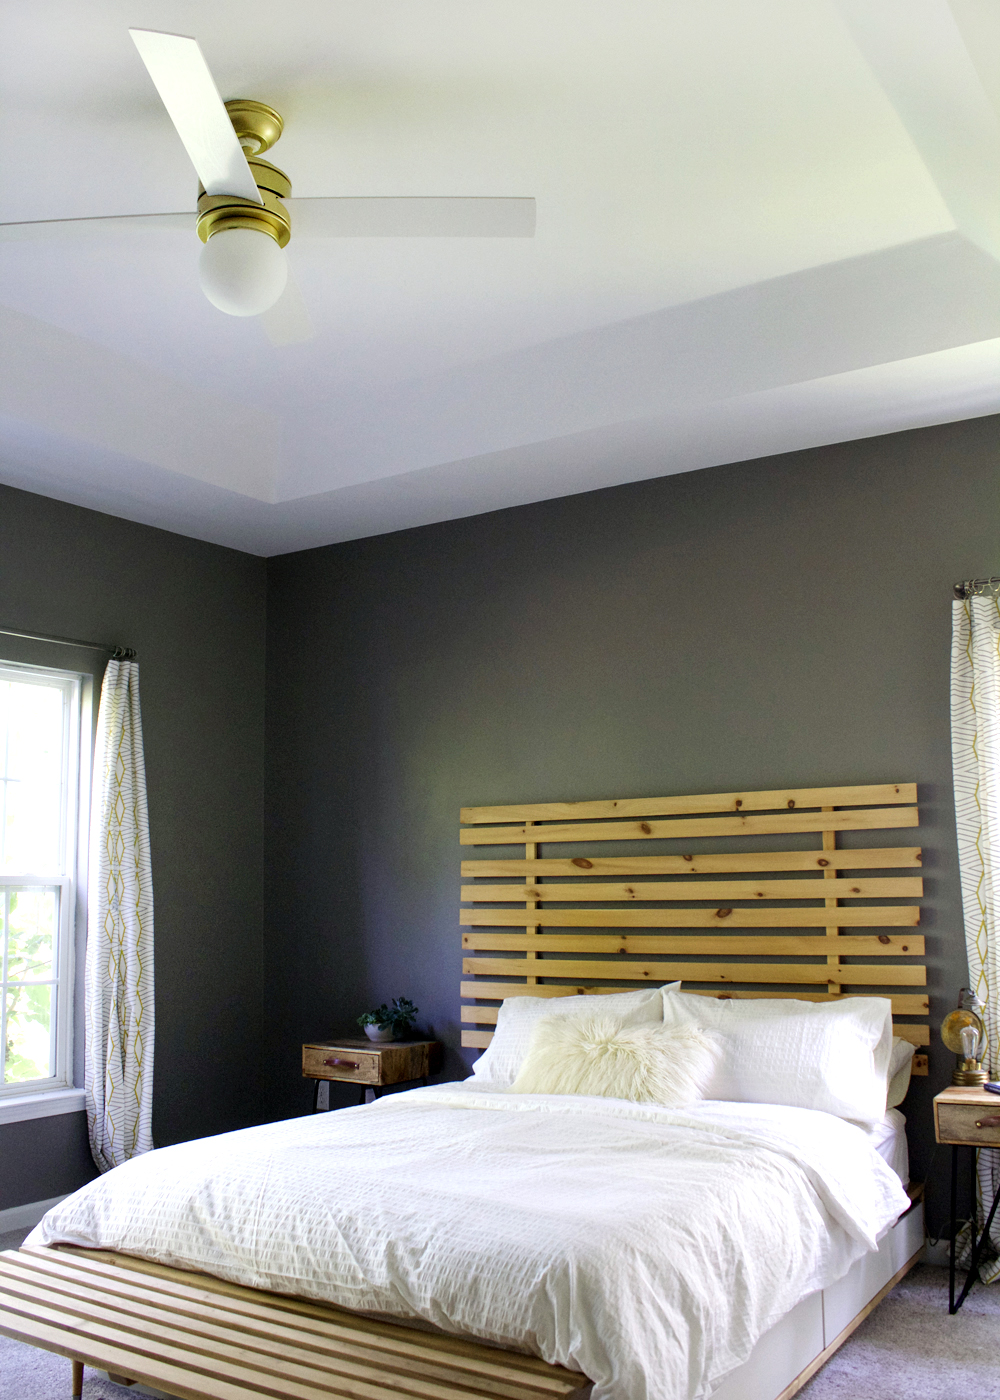 Dovetail Gray modern bedroom with white & wood accents #modernbedroom #budgetfriendly #greyandwhite